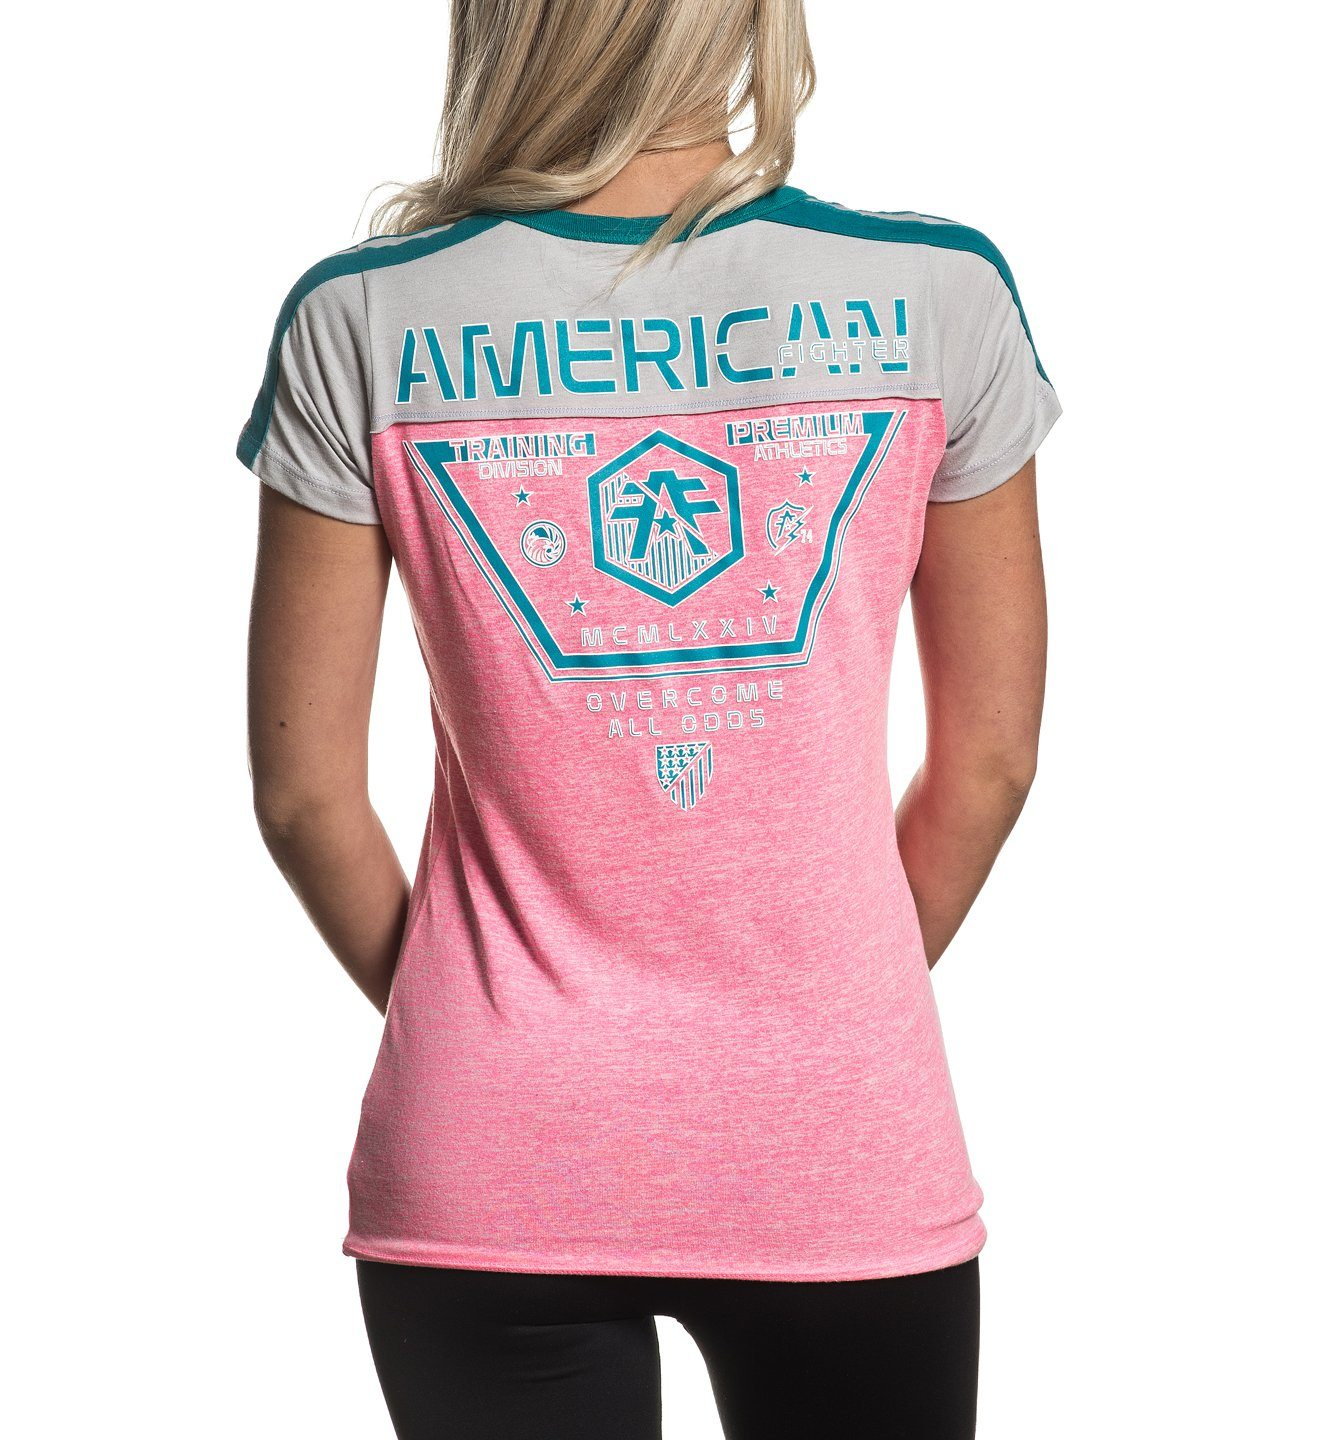 Ryder - Womens Short Sleeve Tees - American Fighter